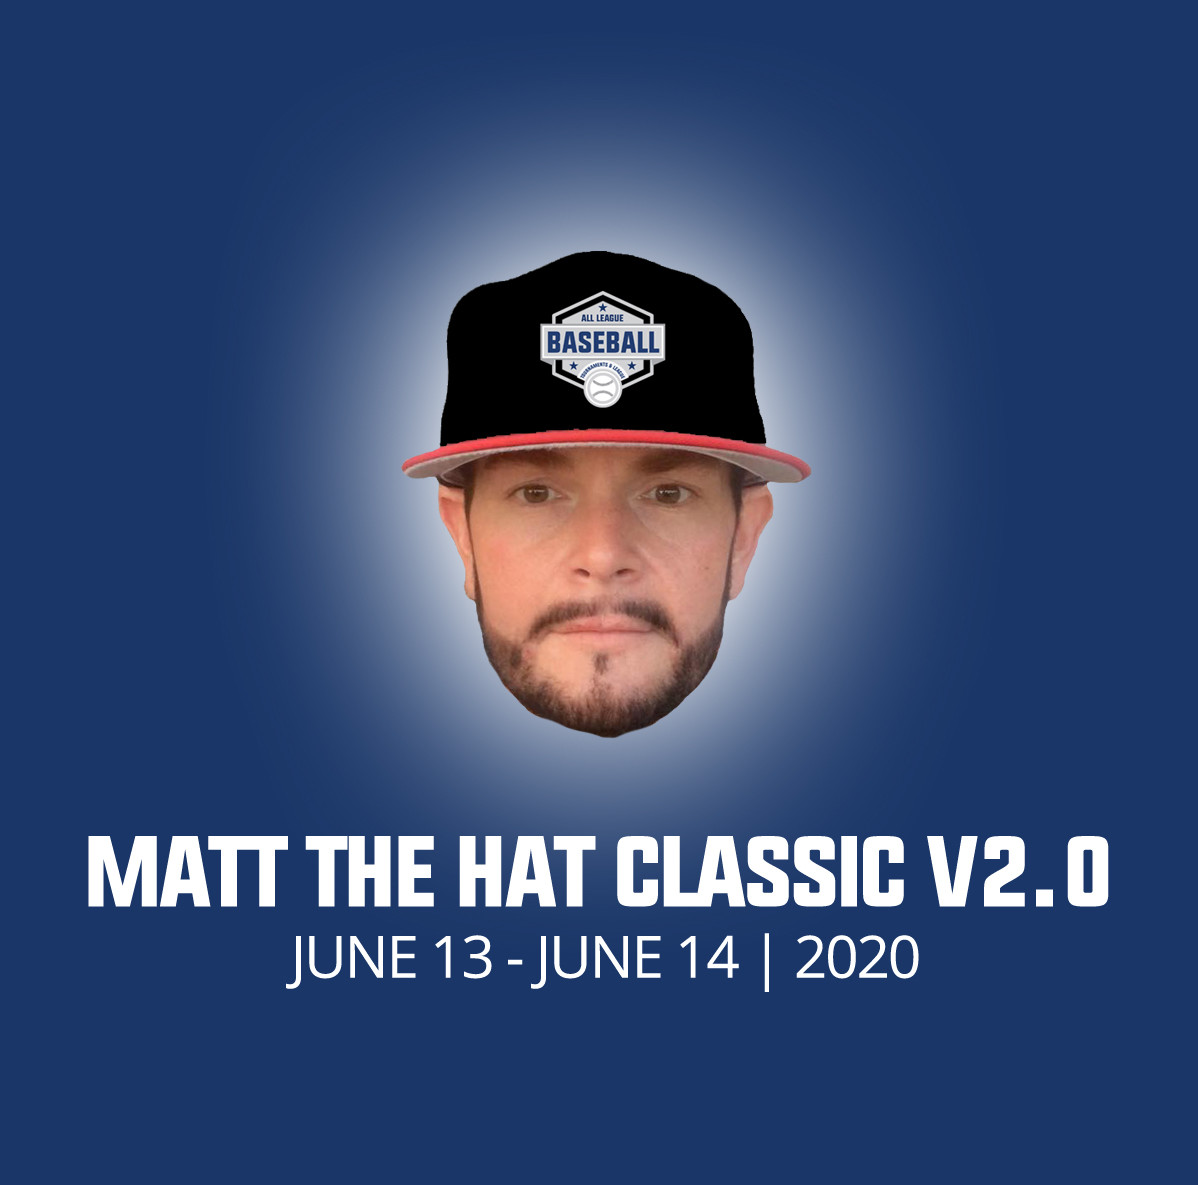 Upstate - Matt The Hat Classic V2.0